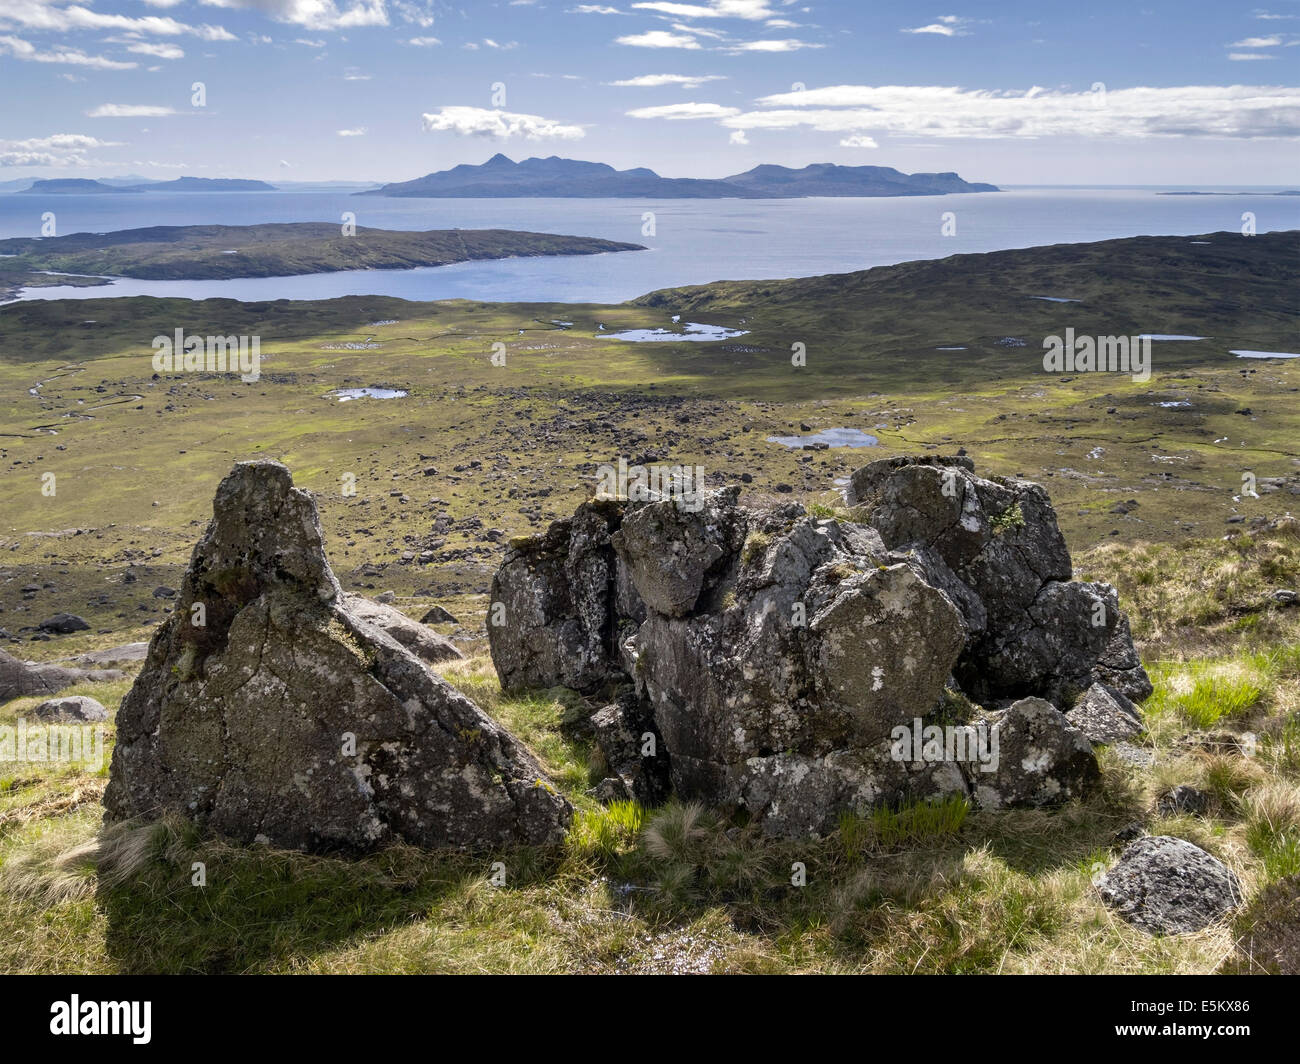 Rocky slopes of Sron na Ciche on Skye with the Hebridean Islands of Soay, Eigg and Rum beyond, Glenbrittle, Scotland, - Stock Image